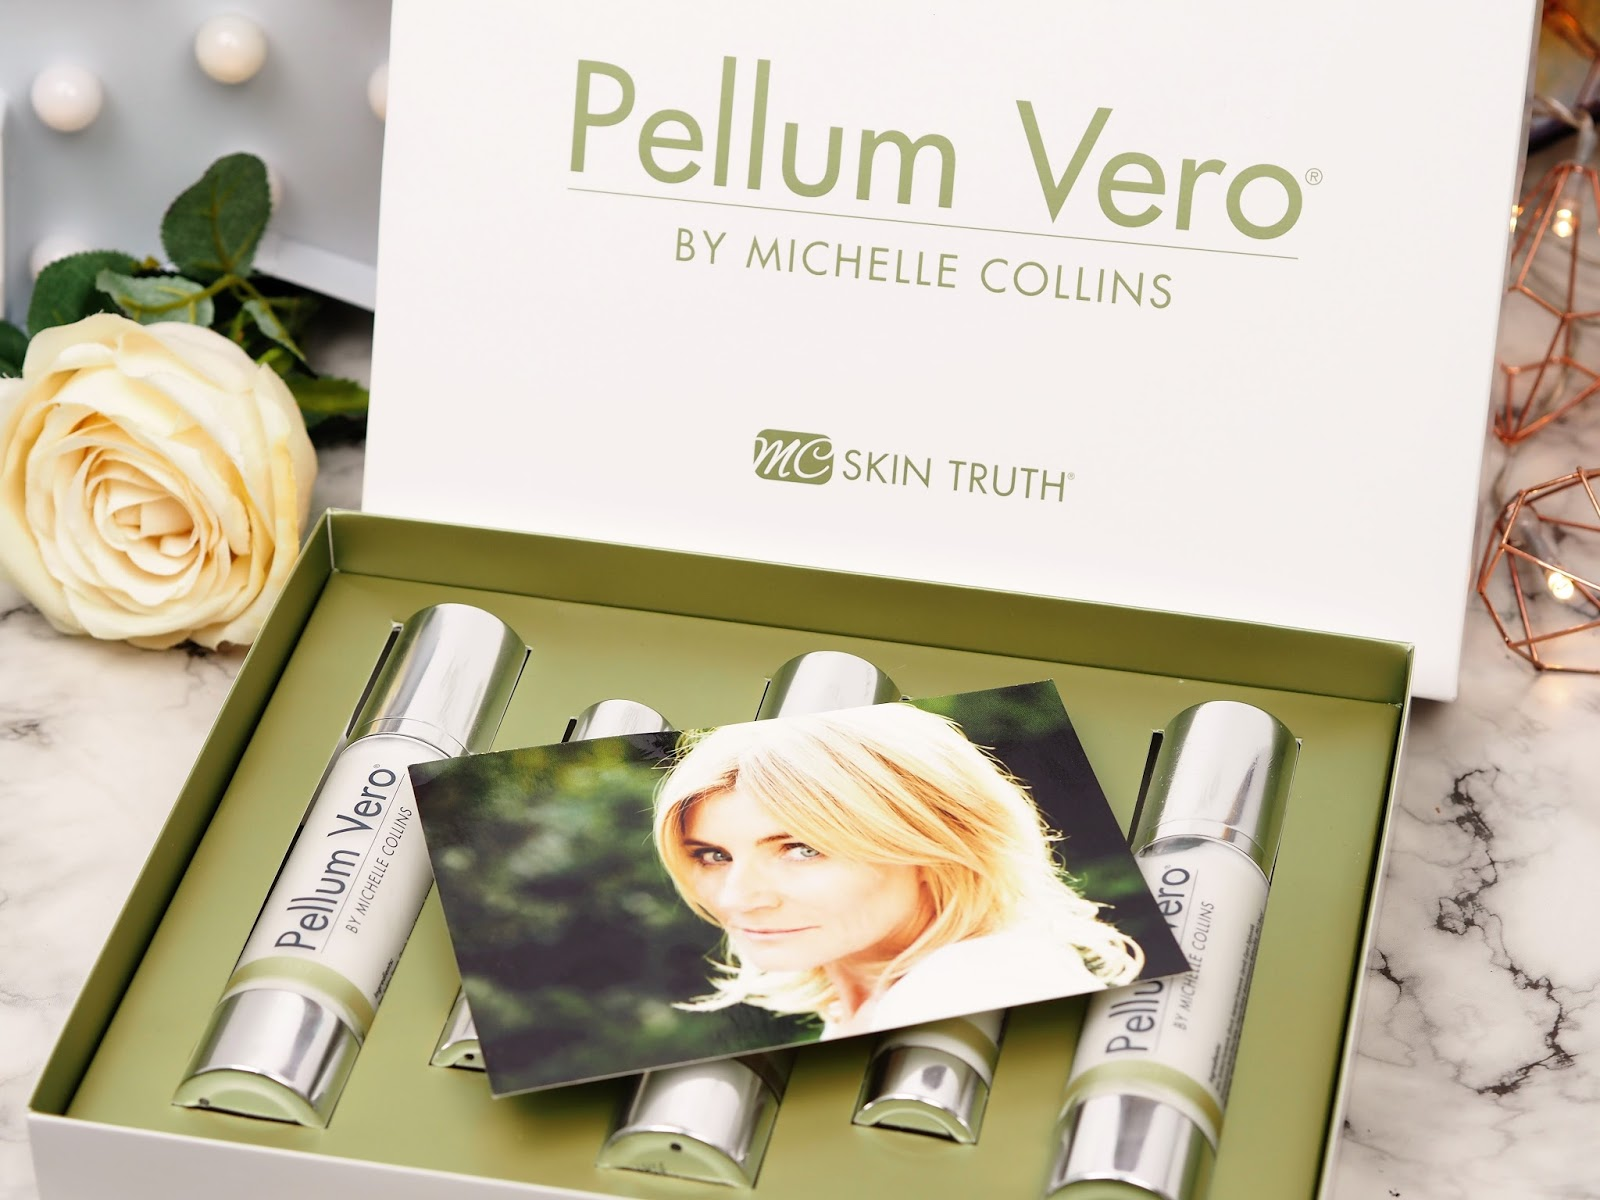 Pellum Vero - MC Skin Truth by Michelle Collins